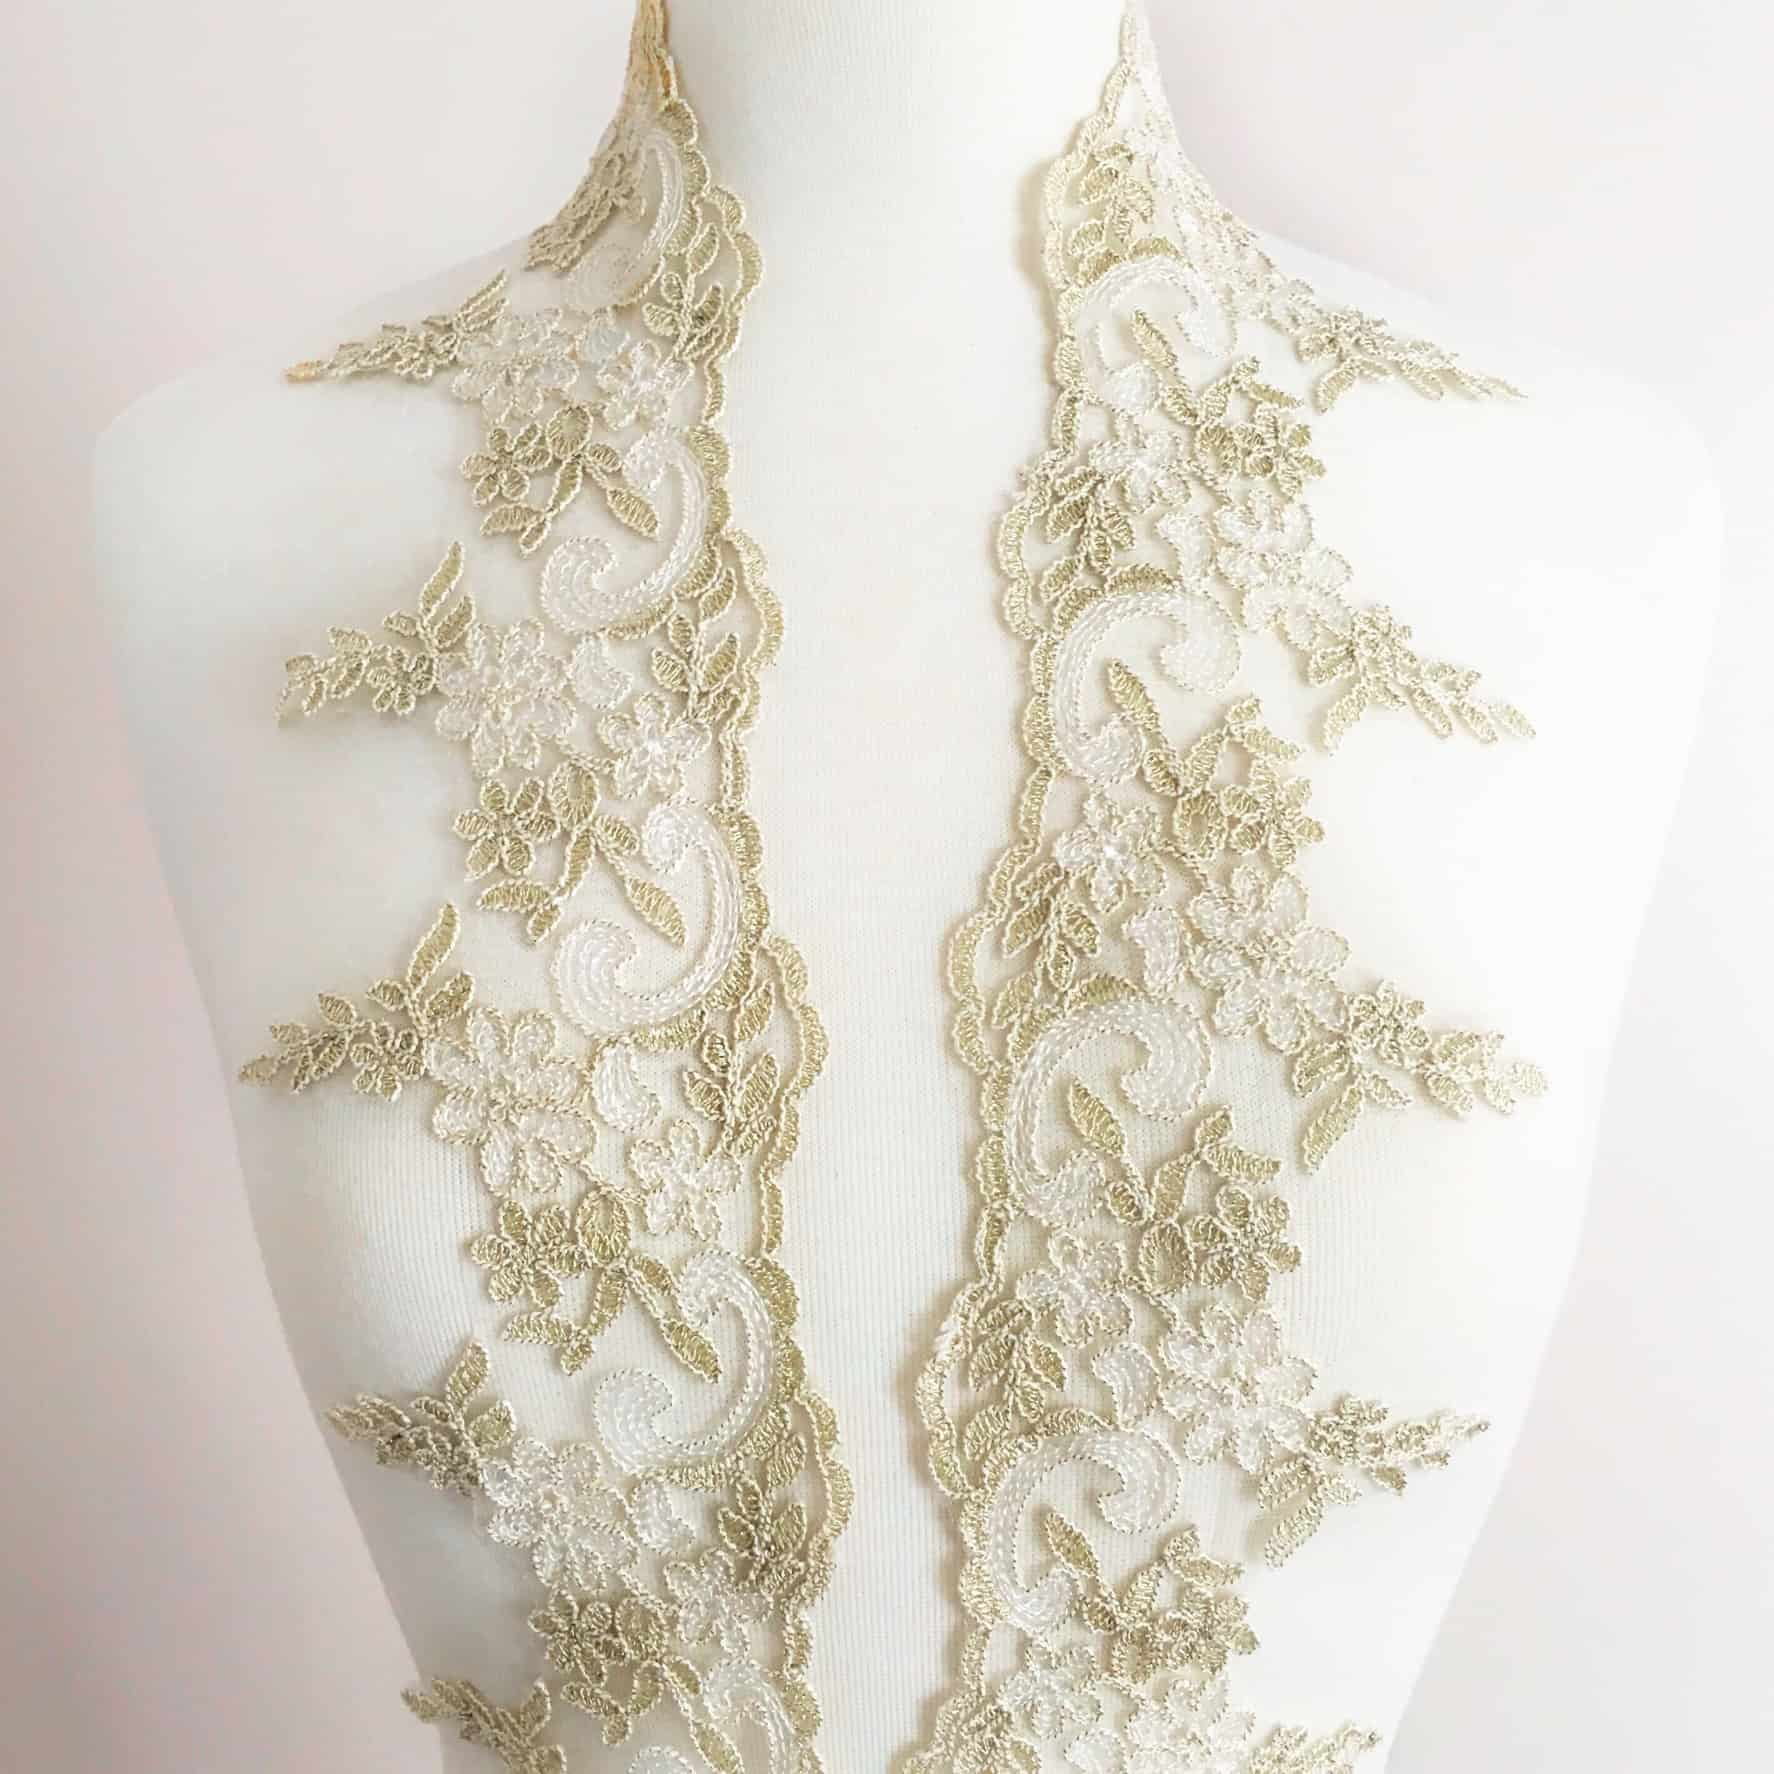 Elegance Re-Embroidered Lace Trim